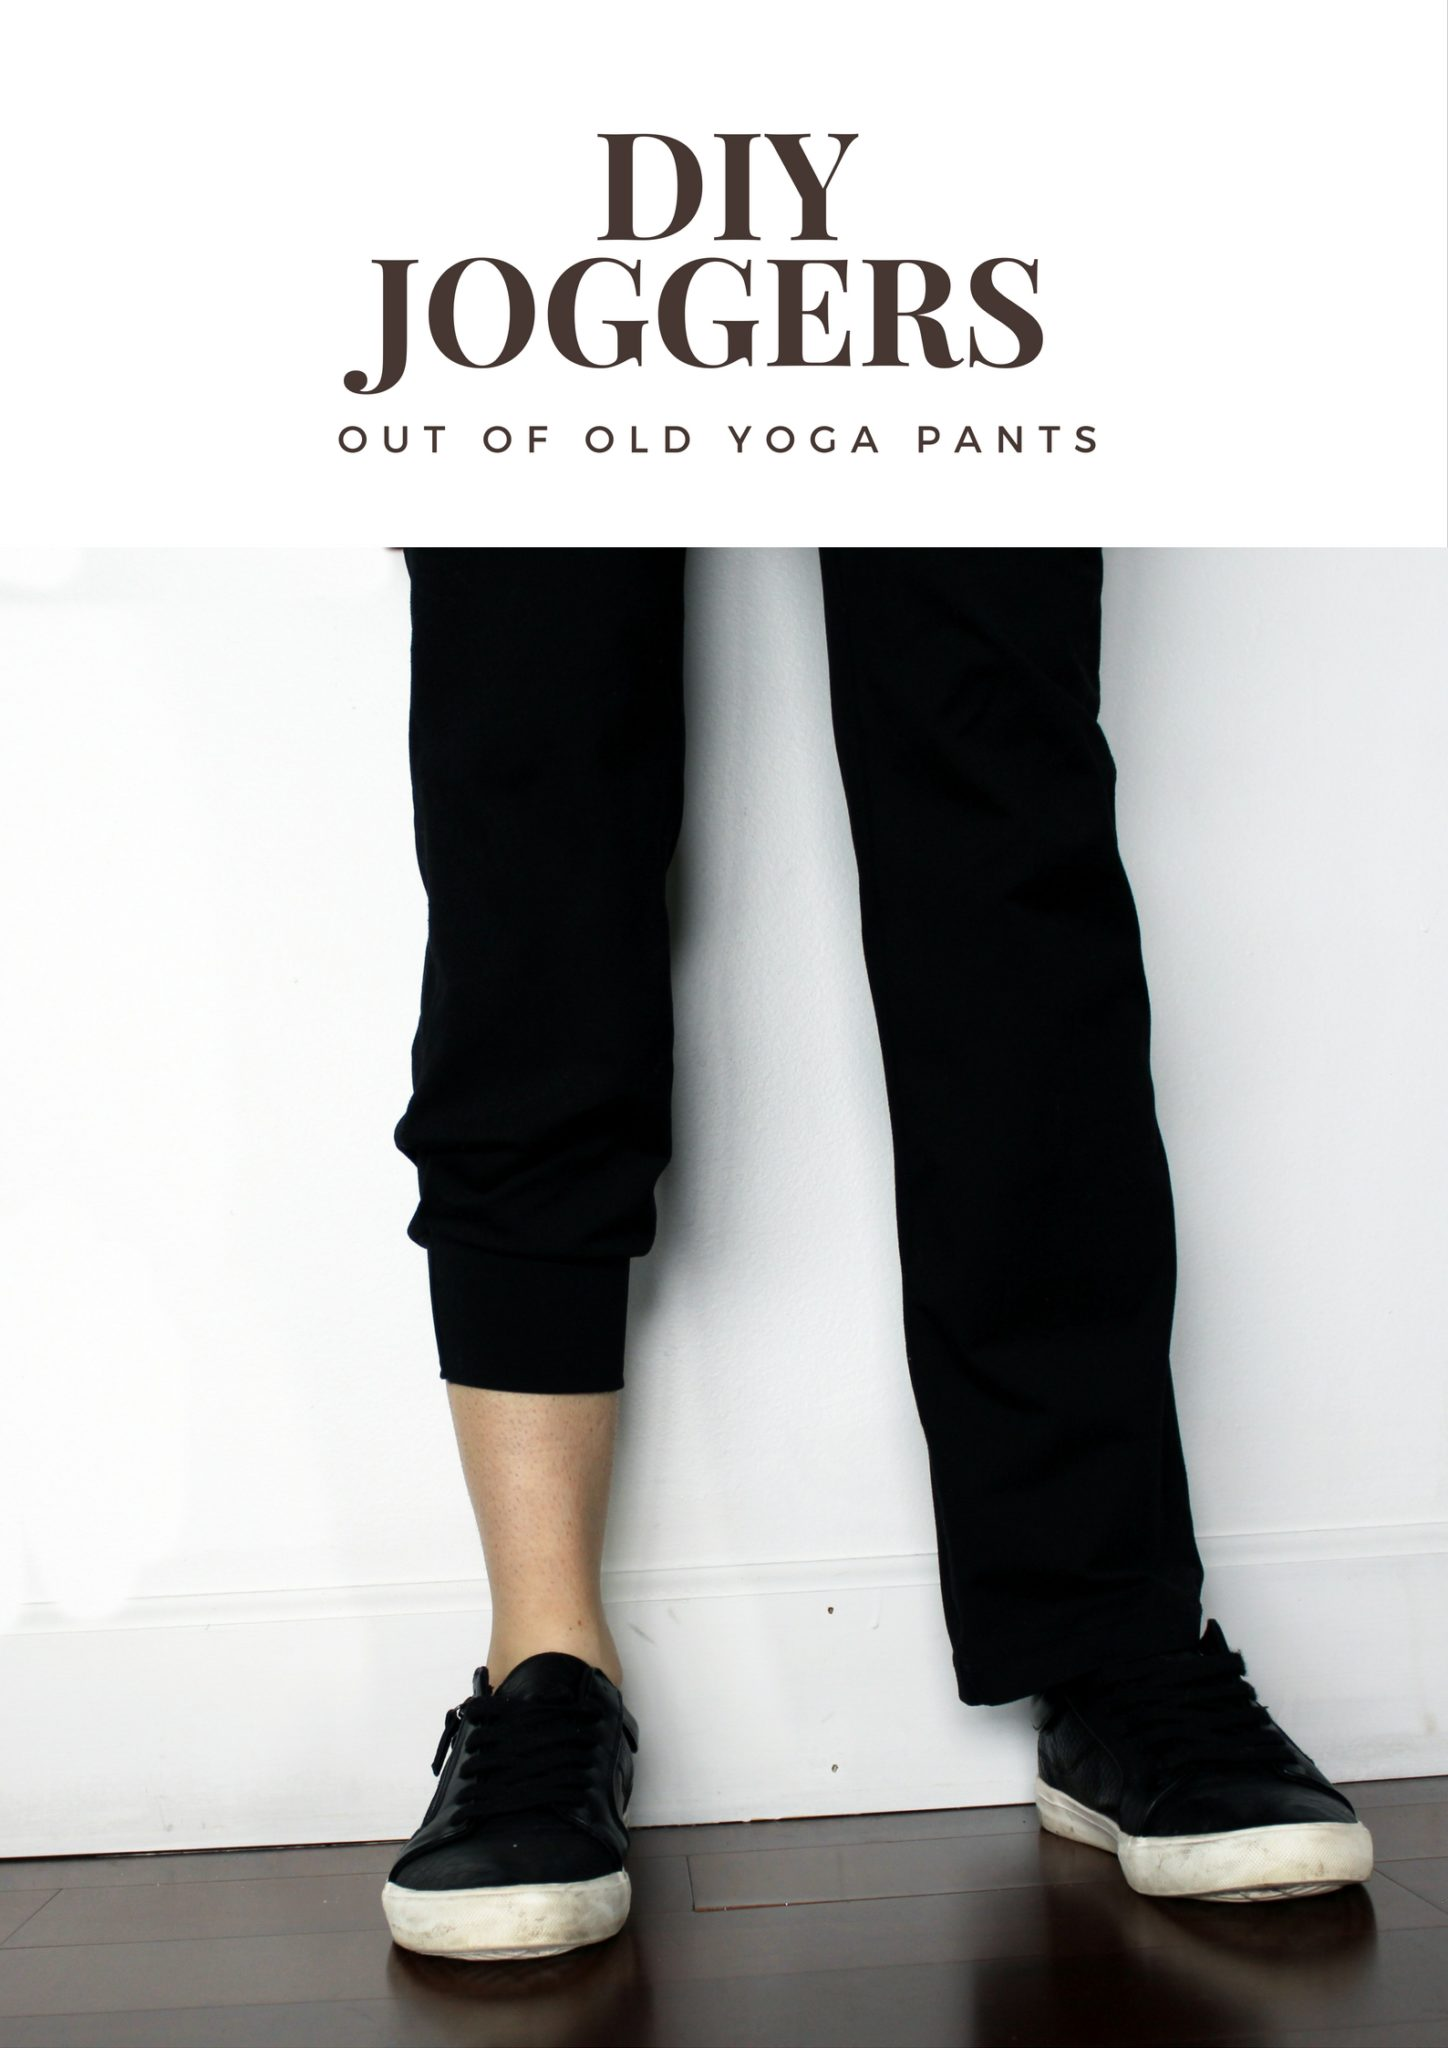 Diy Turn Your Old Yoga Pants Into Joggers